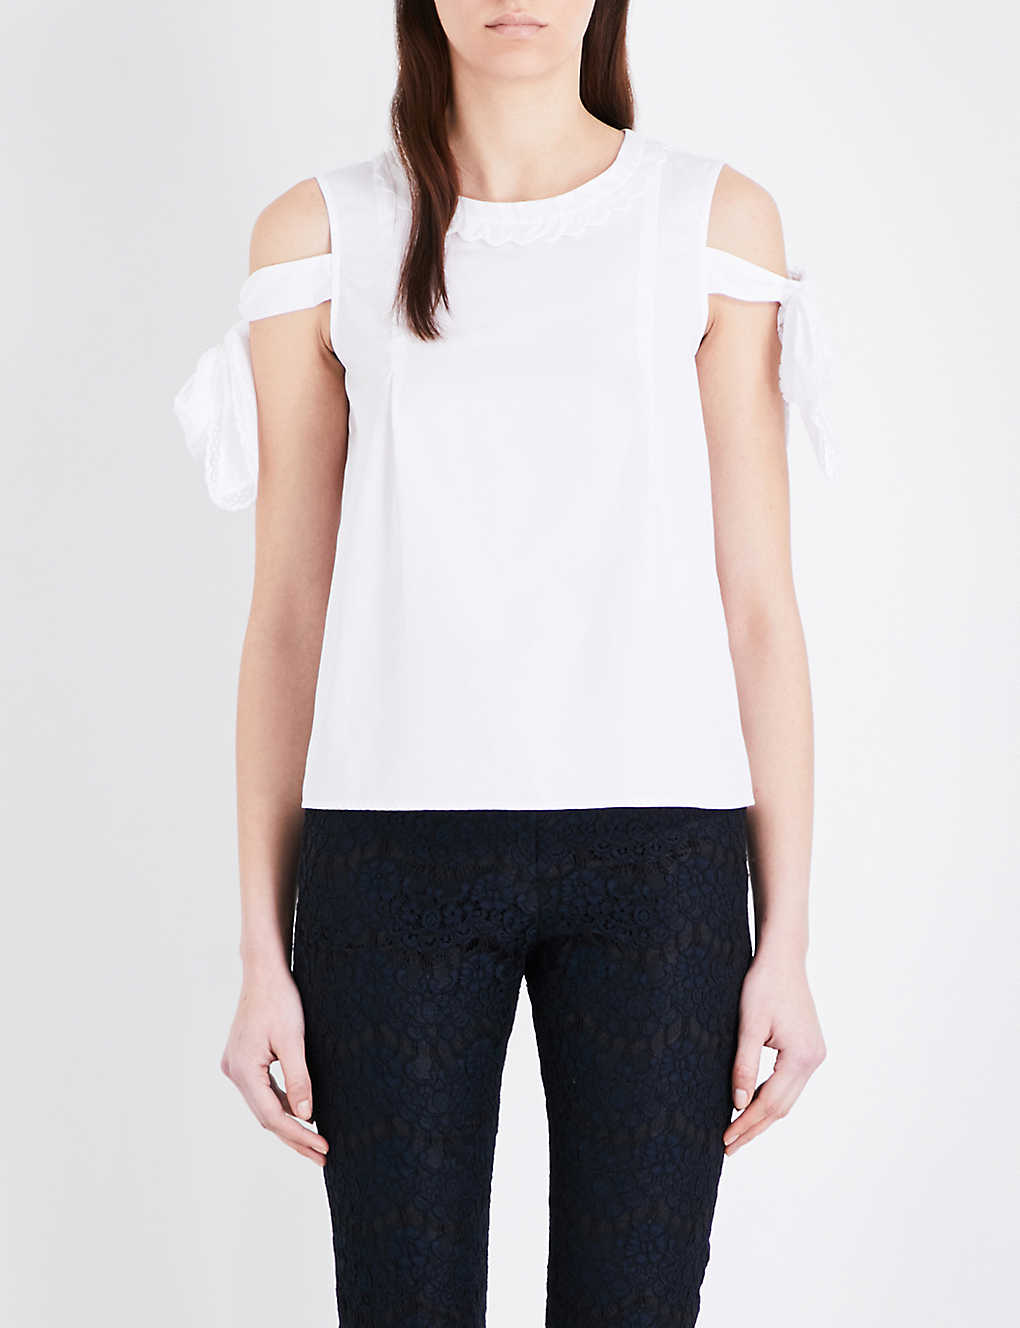 Poplin Top Pierlot Bella Claudie Cotton ZpPwqtStx